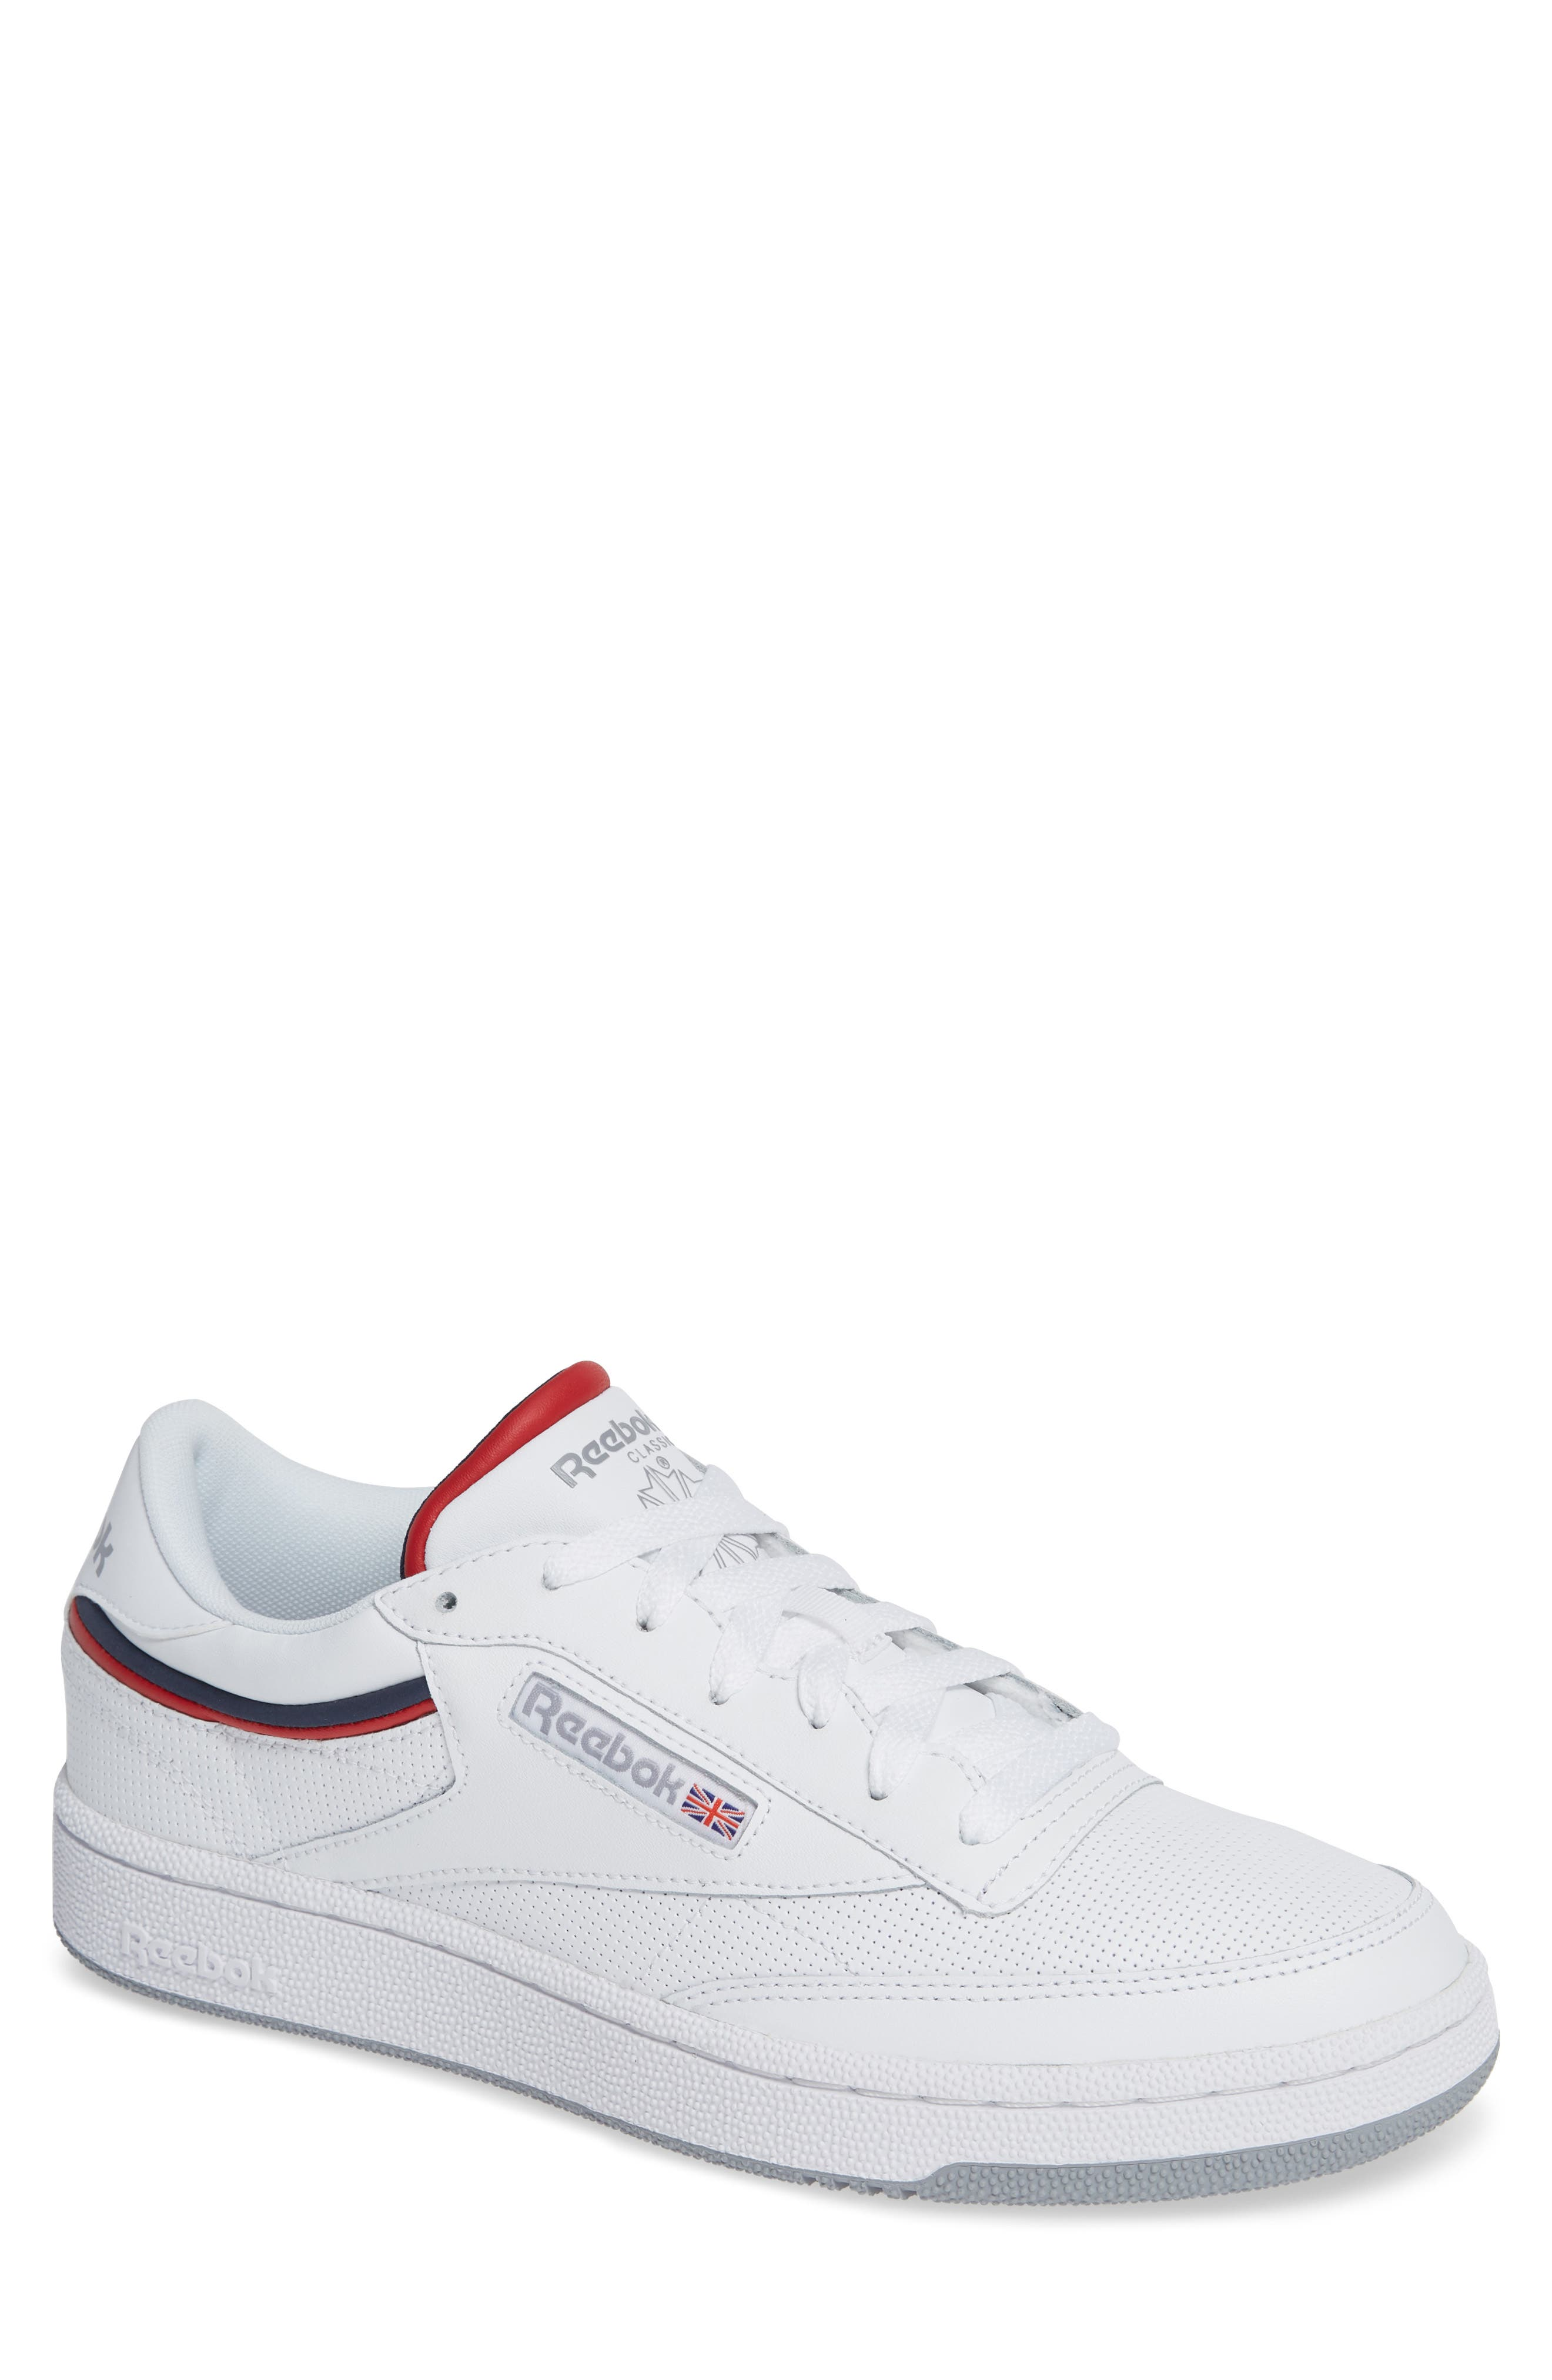 Club C 85 Sneaker,                             Main thumbnail 1, color,                             WHITE/ COLLEGIATE NAVY/ RED